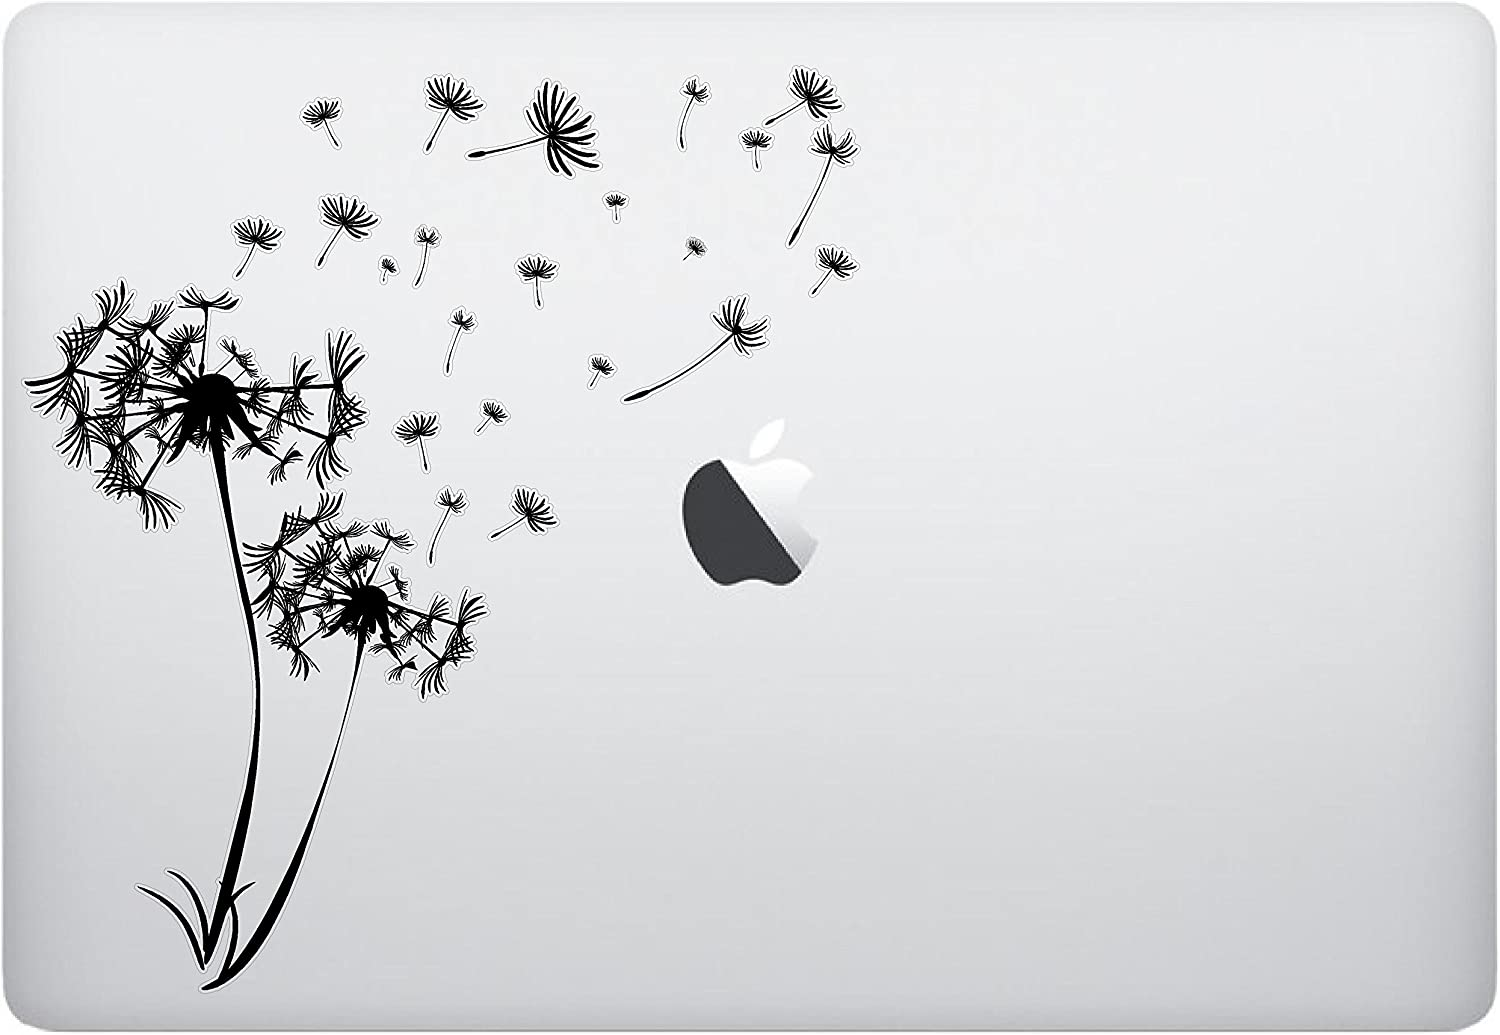 Laptop Sticker Decal - Dandelions - Funny Cute Skins Stickers